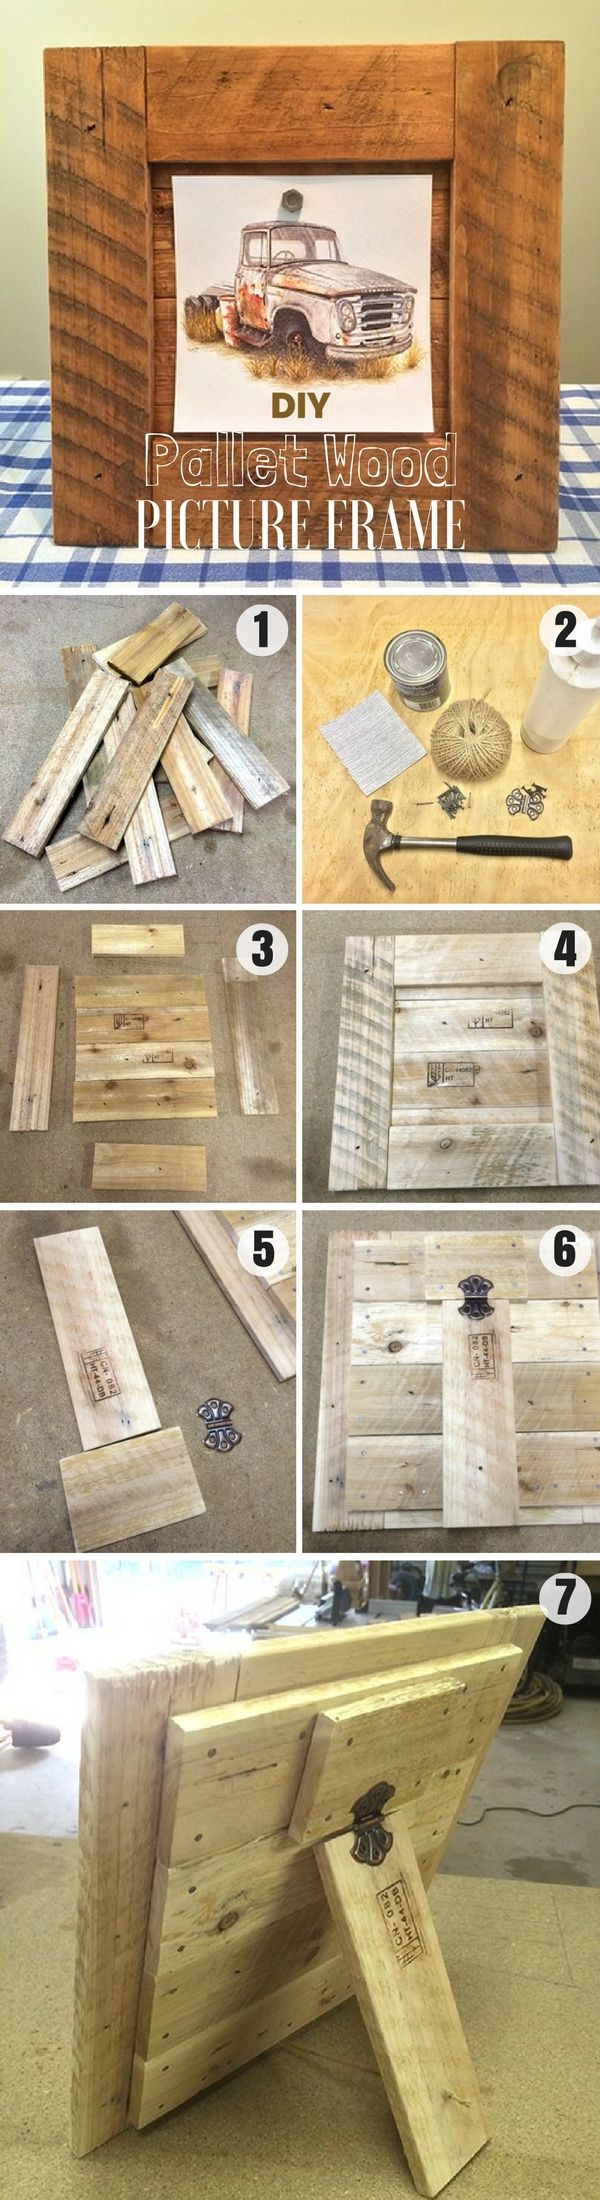 25 best ideas about pallet picture frames on pinterest